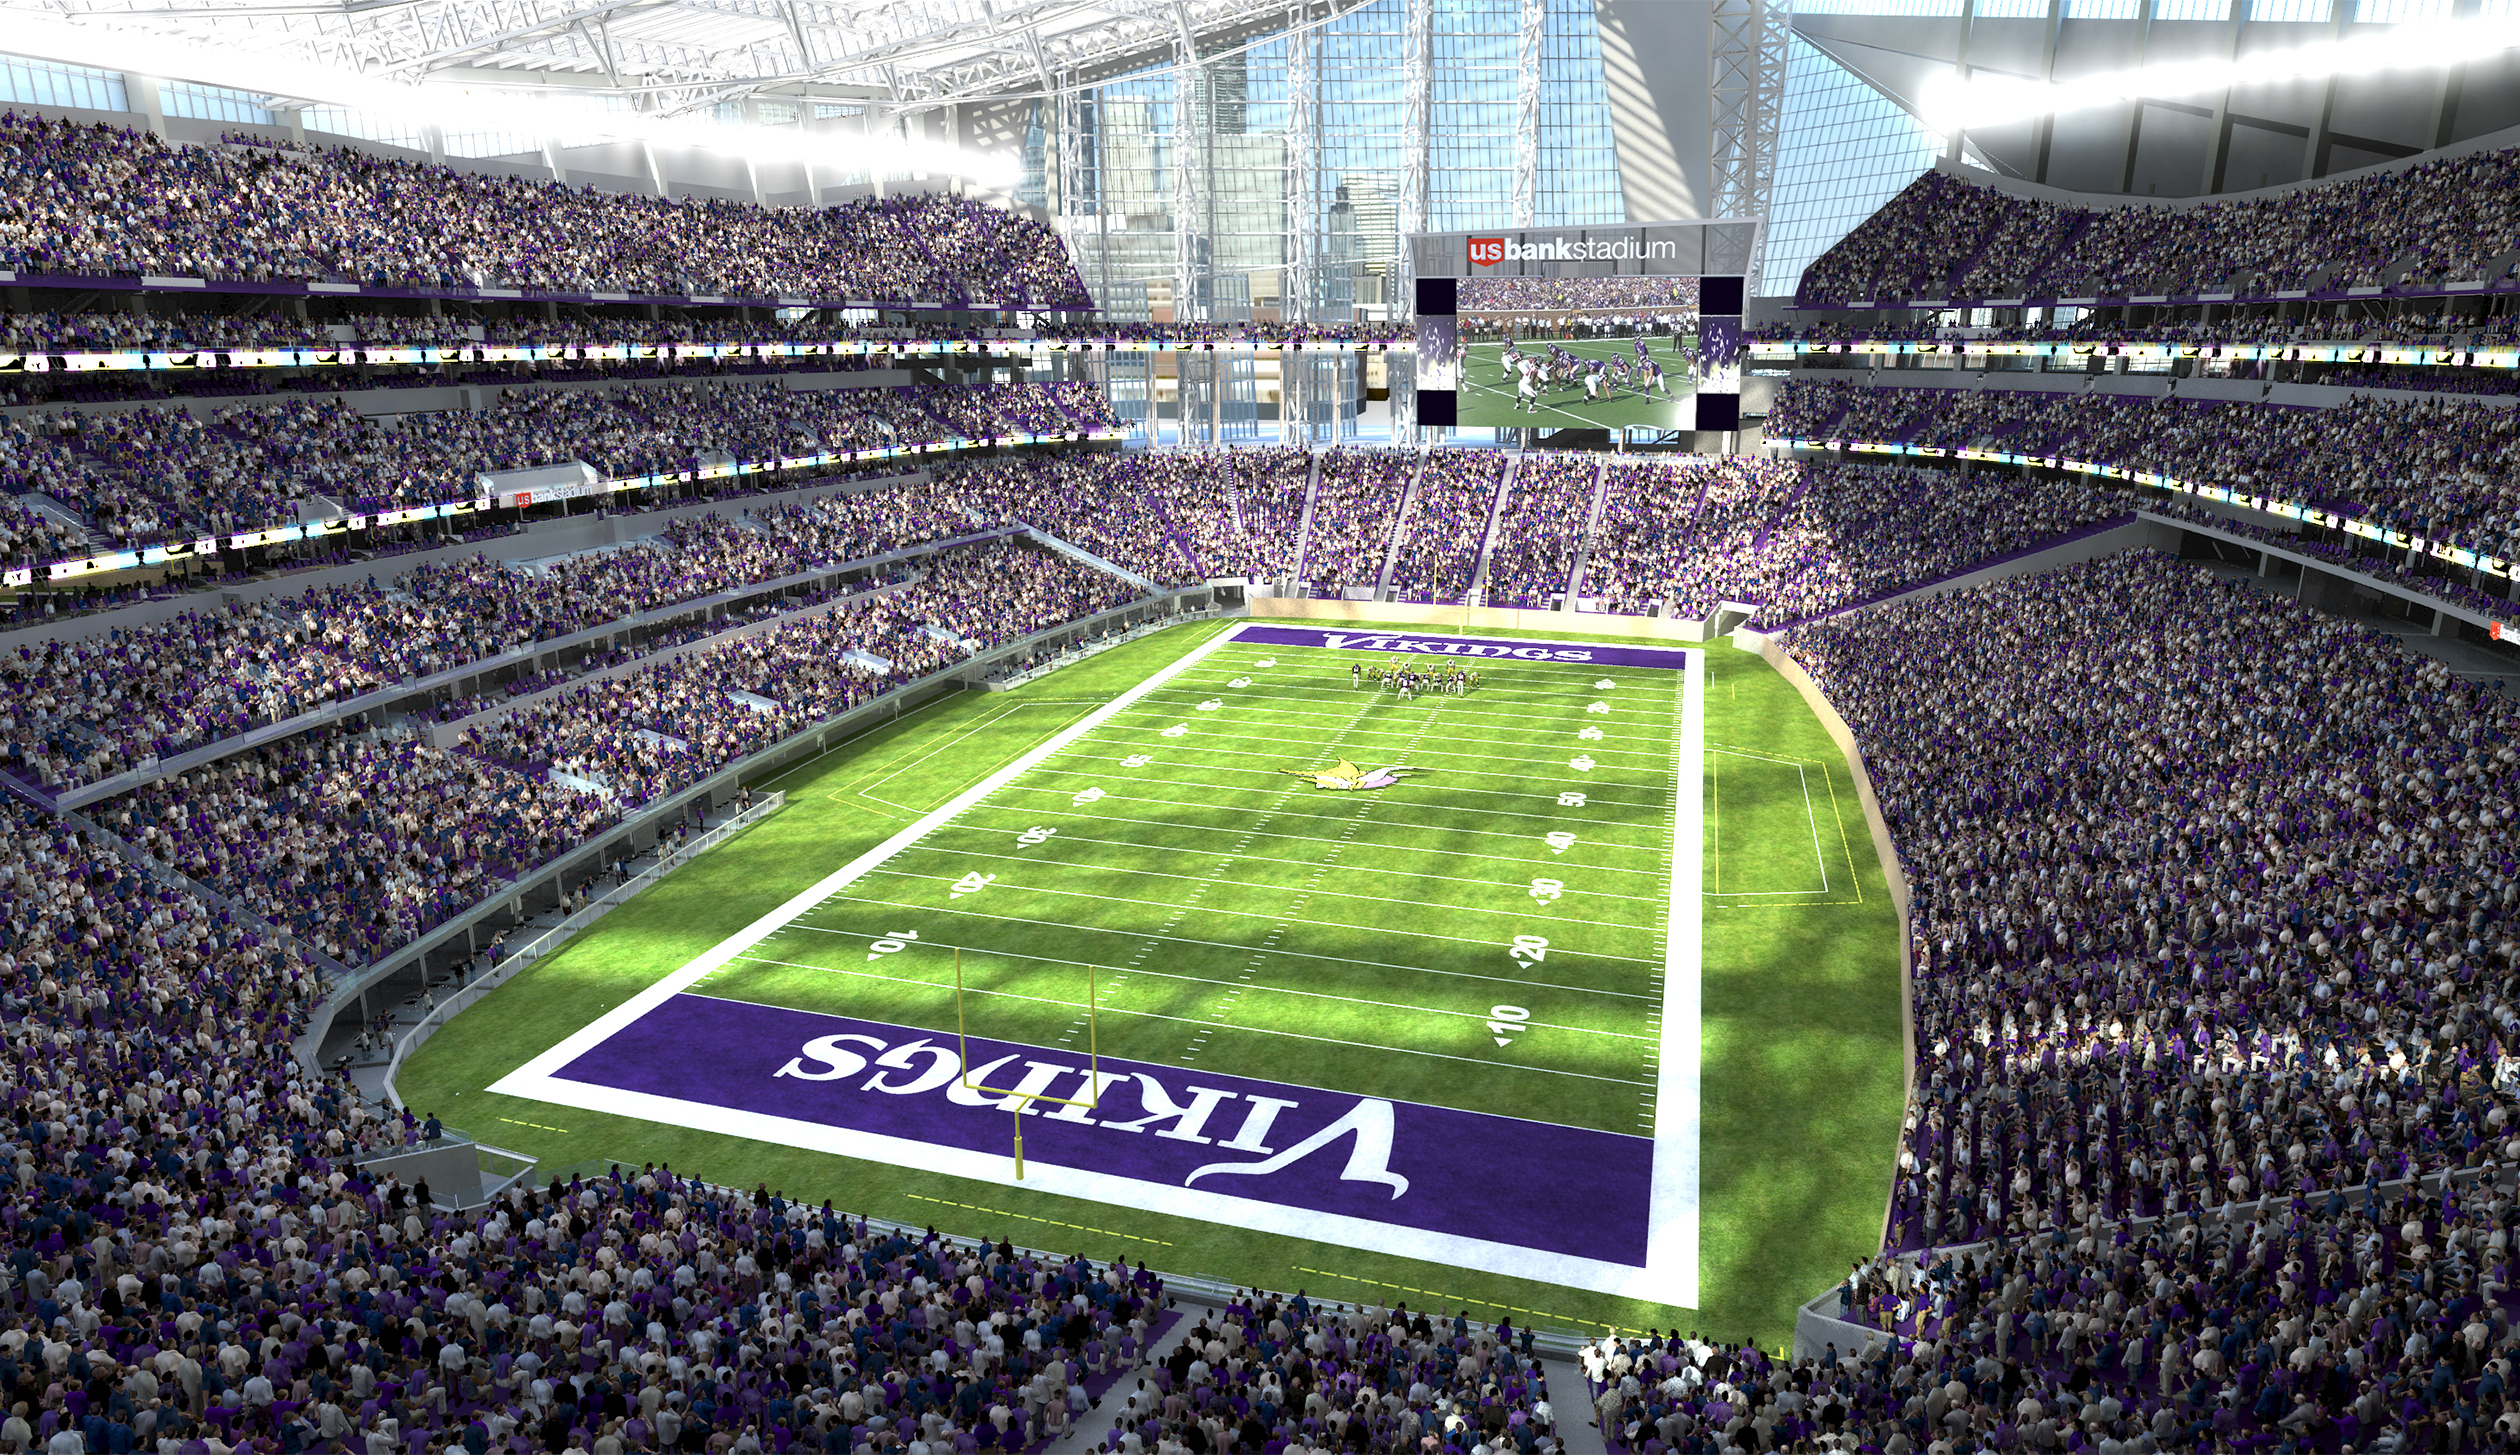 An inside look at the new Minnesota Viking's stadium. The Vikings play their first football game Sunday at U.S. Bank Stadium, their new 1.75 million square-foot home.